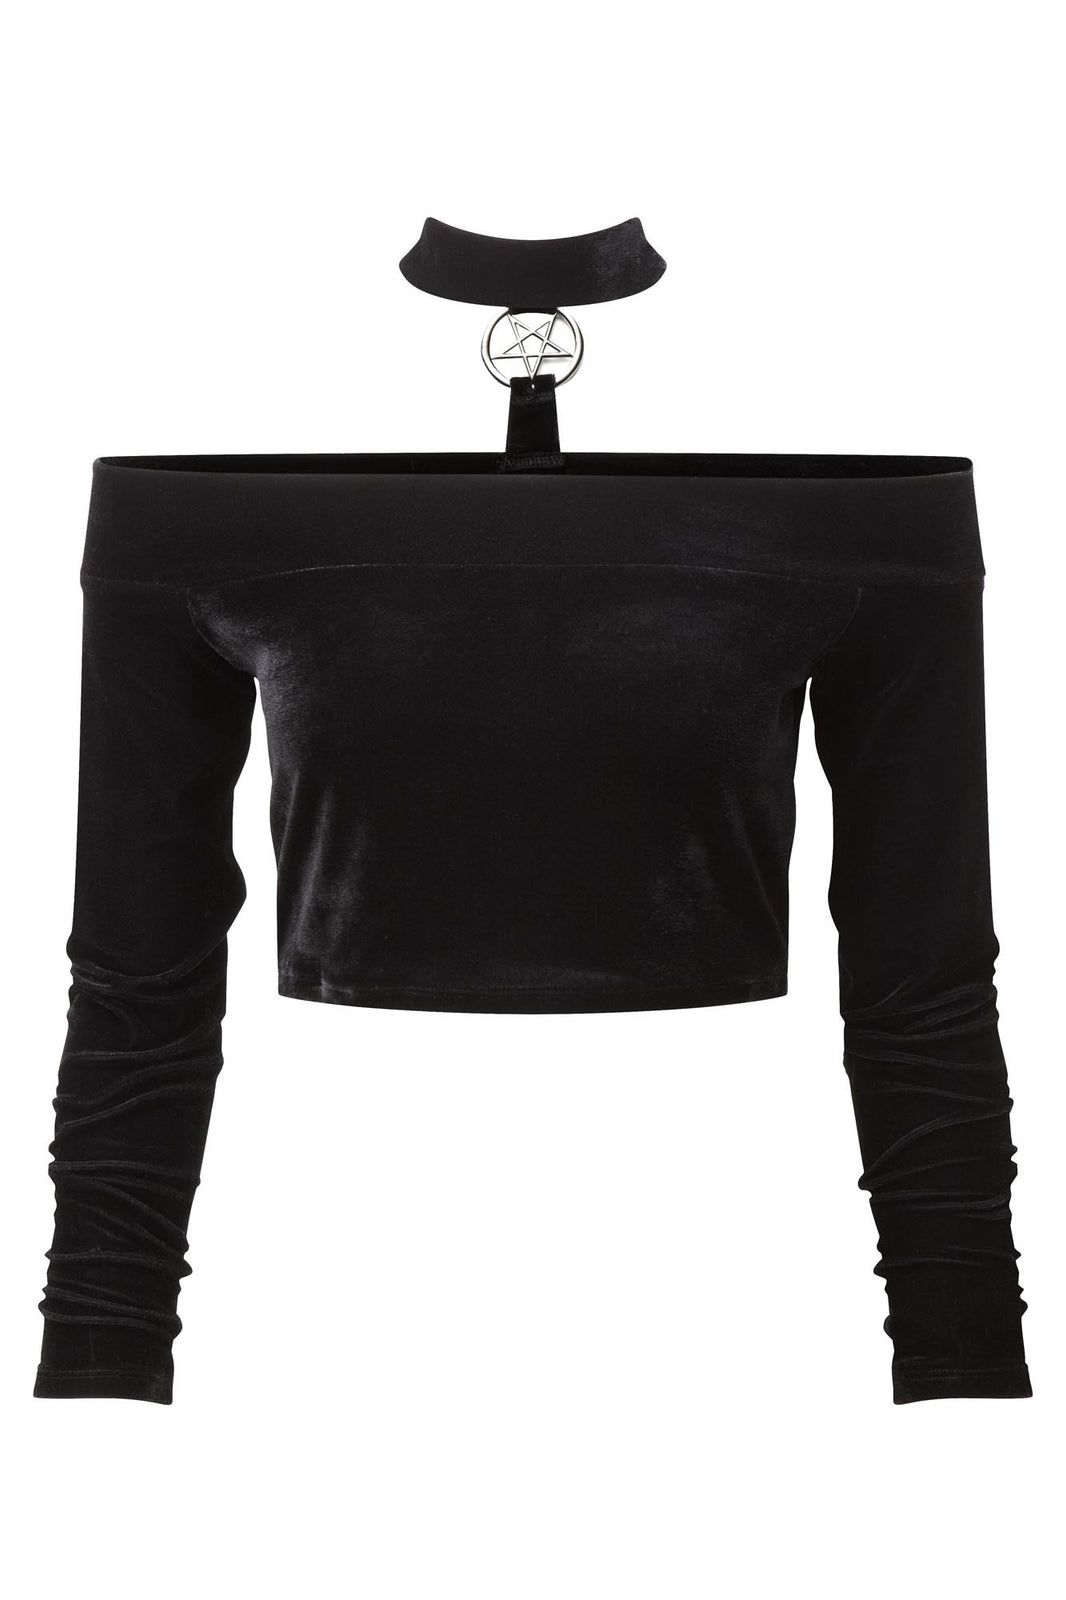 Mortuary Unholy Bardot Top [B]